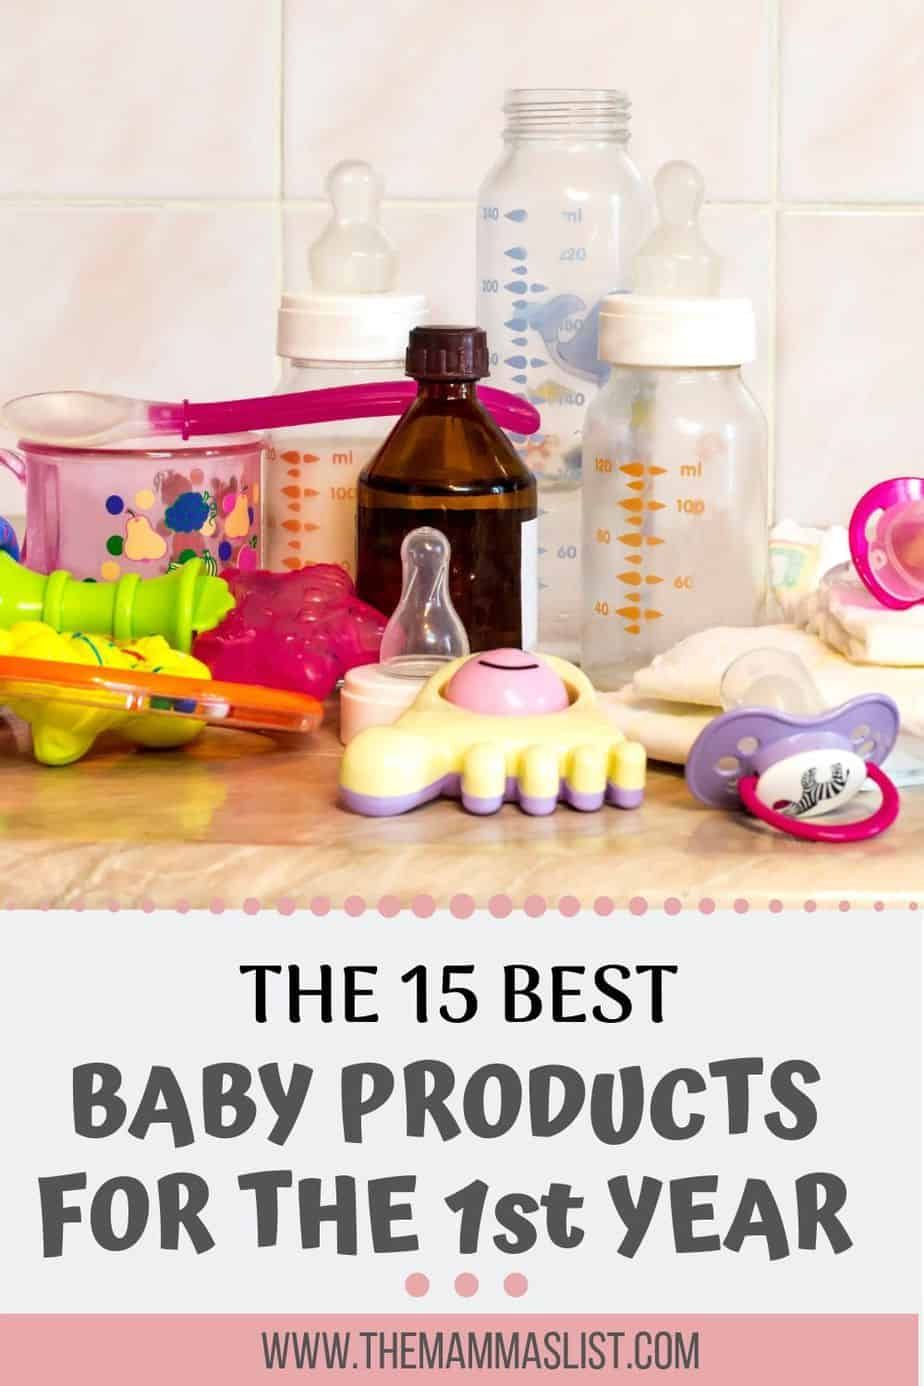 There are so many baby items that it can be overwhelming as a new mom. These are the top 15 baby products we used the first year. They're all must haves on your baby registry and were 100% worth the money. Check out what we REALLY needed the first year with an infant.